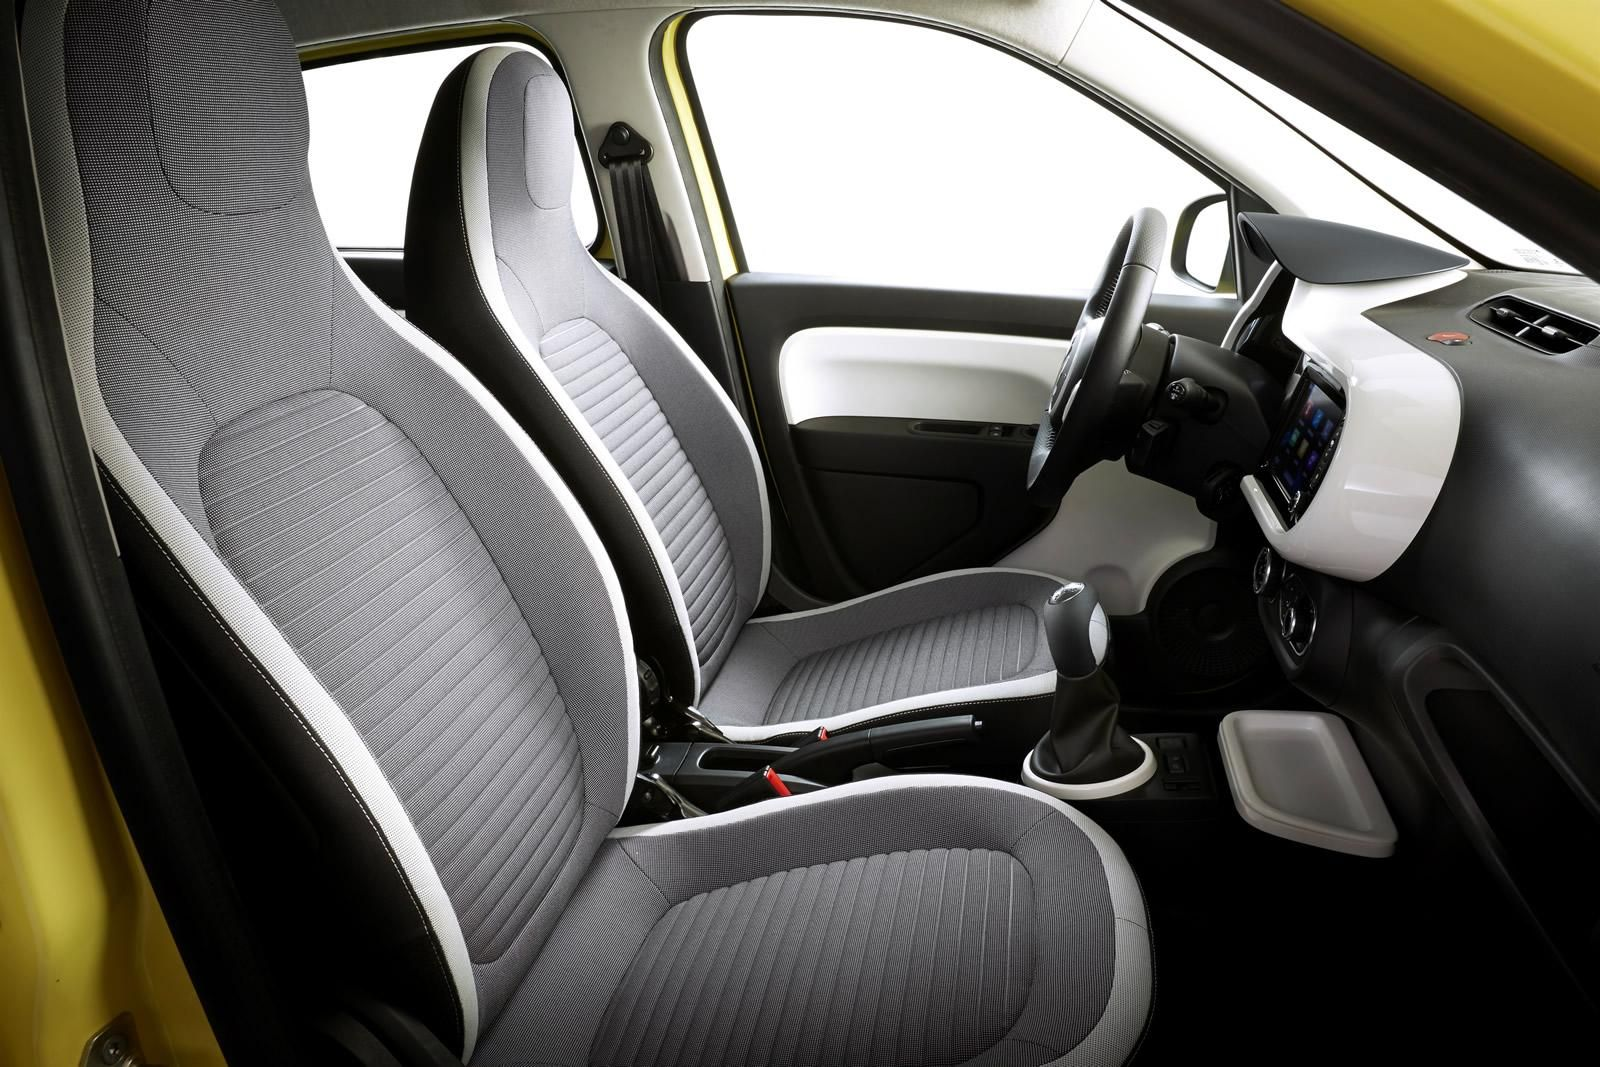 2015 Renault Twingo Interior Front Seat Car Seats Seating New Cars